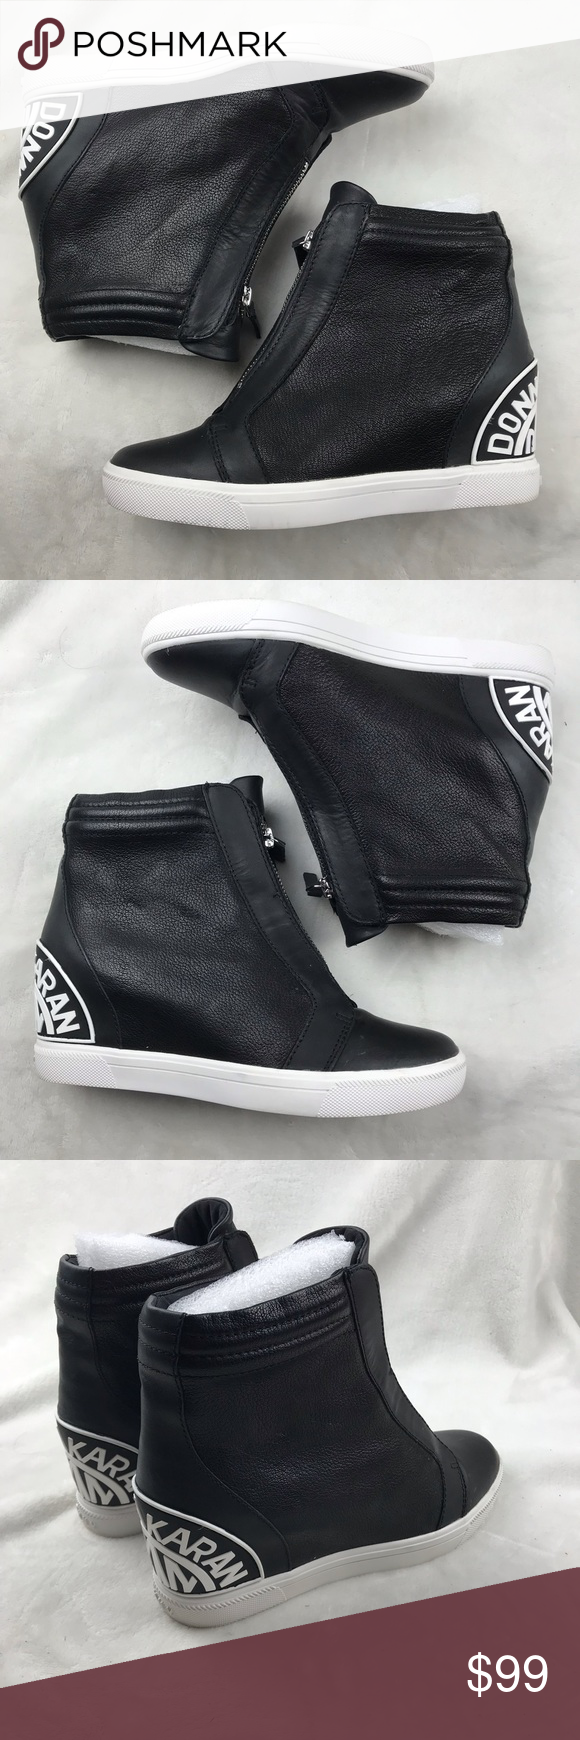 7b78d0c9502f DKNY Connie Slip On Booties Size 5.5M Zip up a street-savvy look in ...